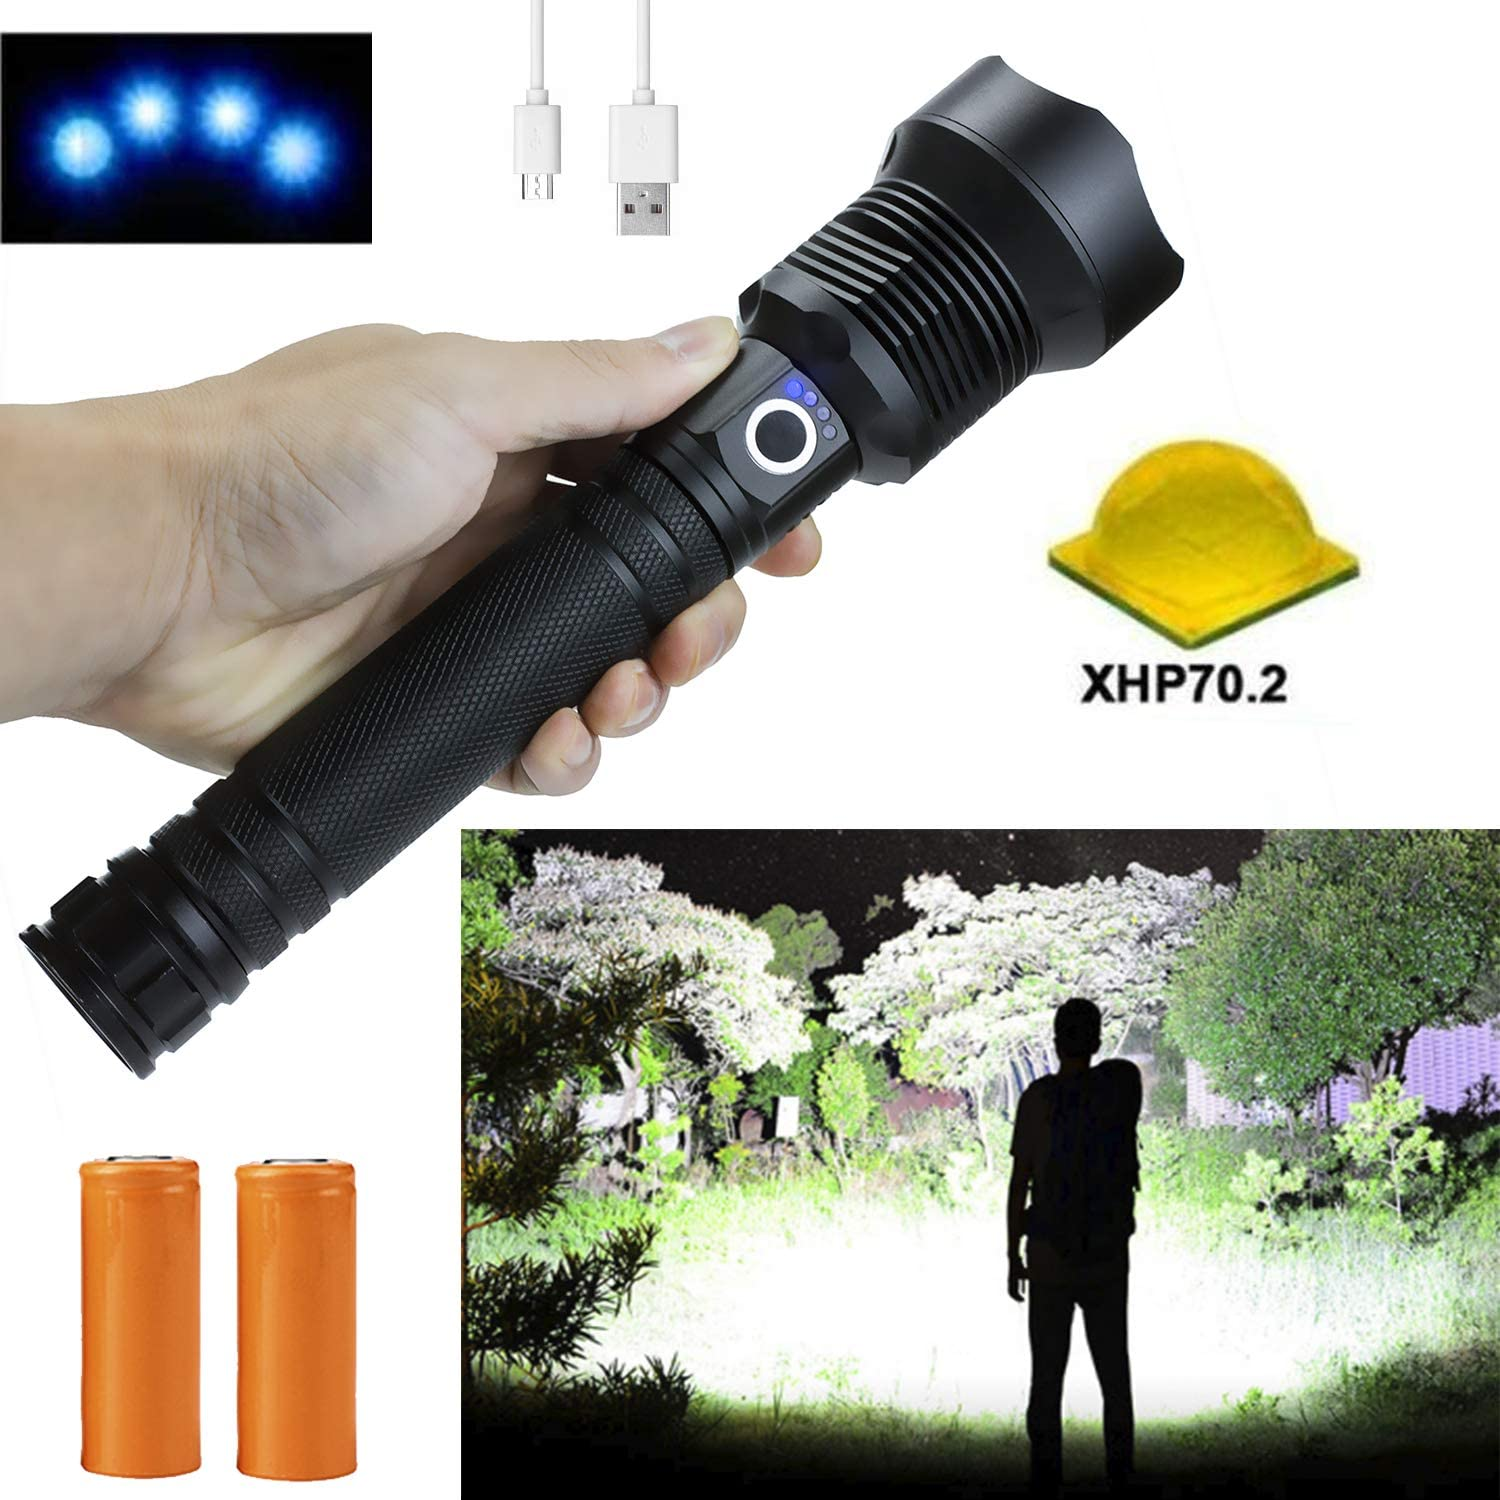 Rechargeable Flashlights High Lumens, 90000 Lumens Super Bright Led Flashlight Powerful Tactical Flashlight with Batteries Included, Zoomable, 3 Modes, Waterproof Flashlight for Emergencies, Camping: Home & Kitchen